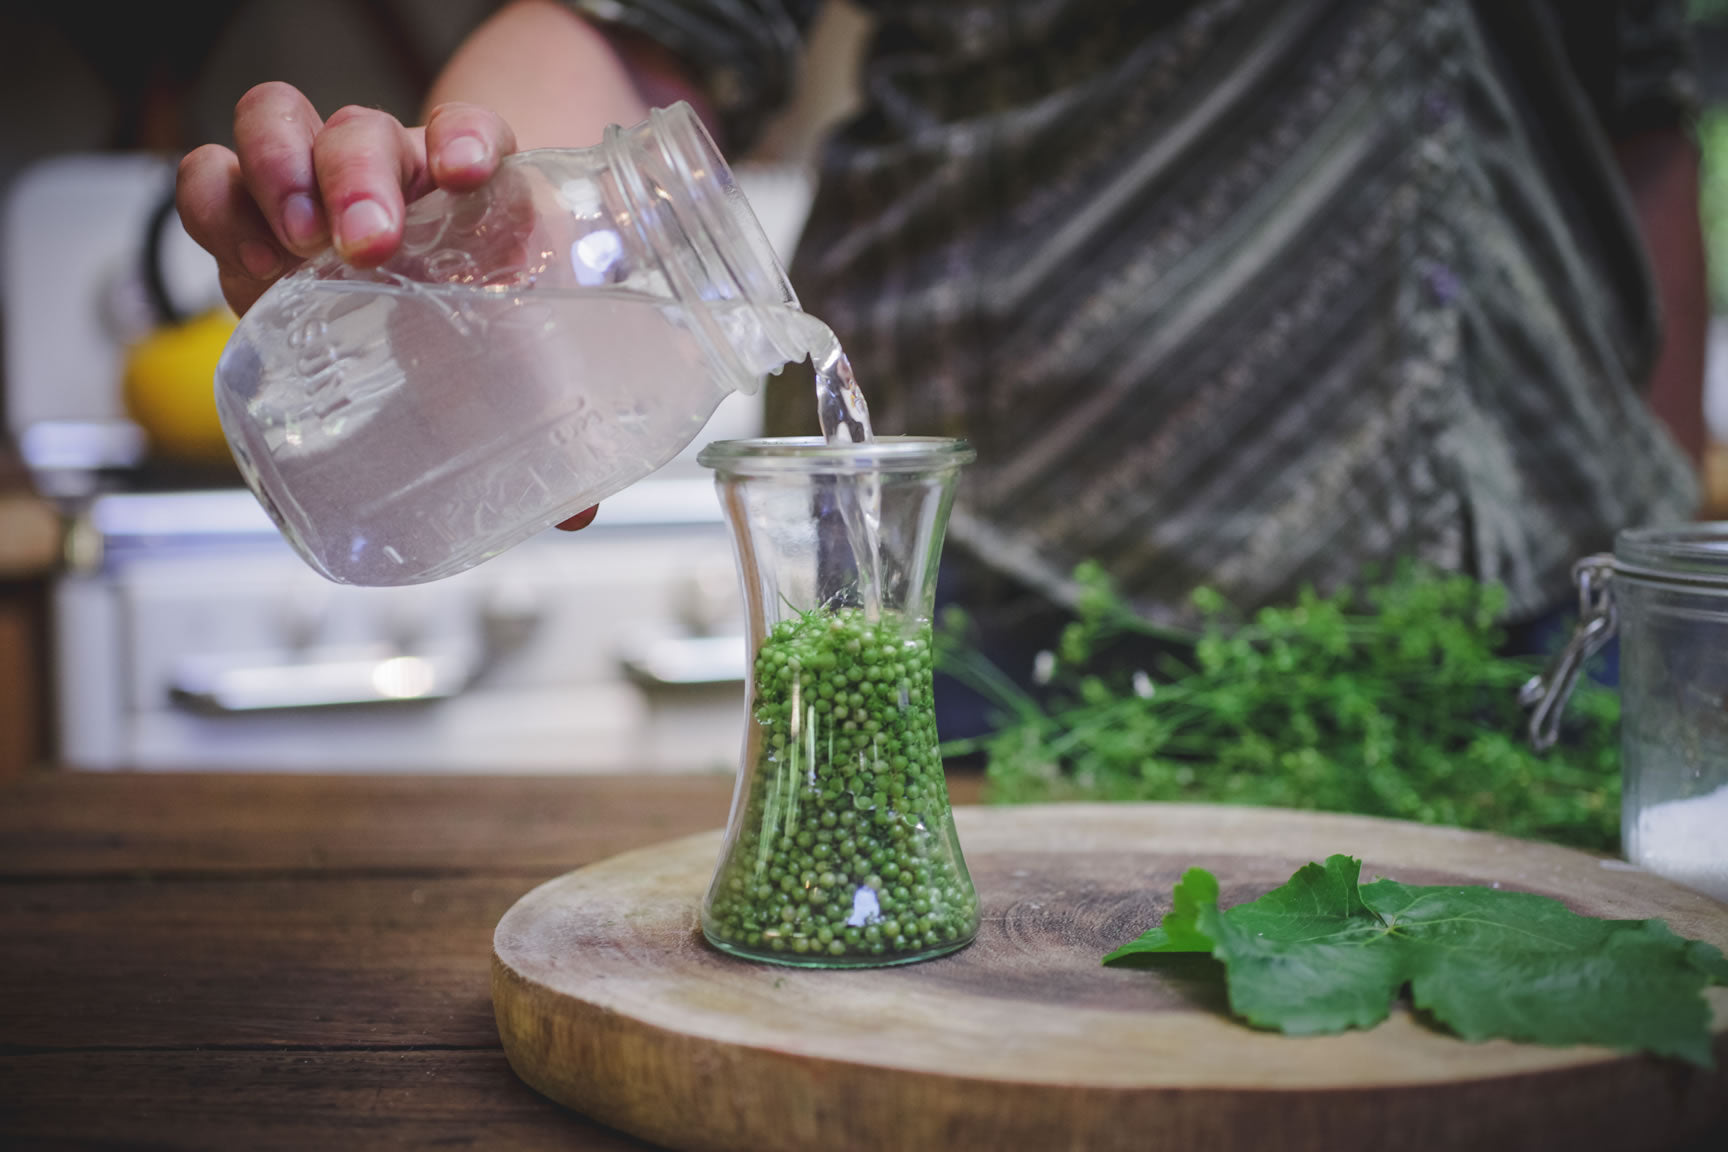 pour brine over seeds